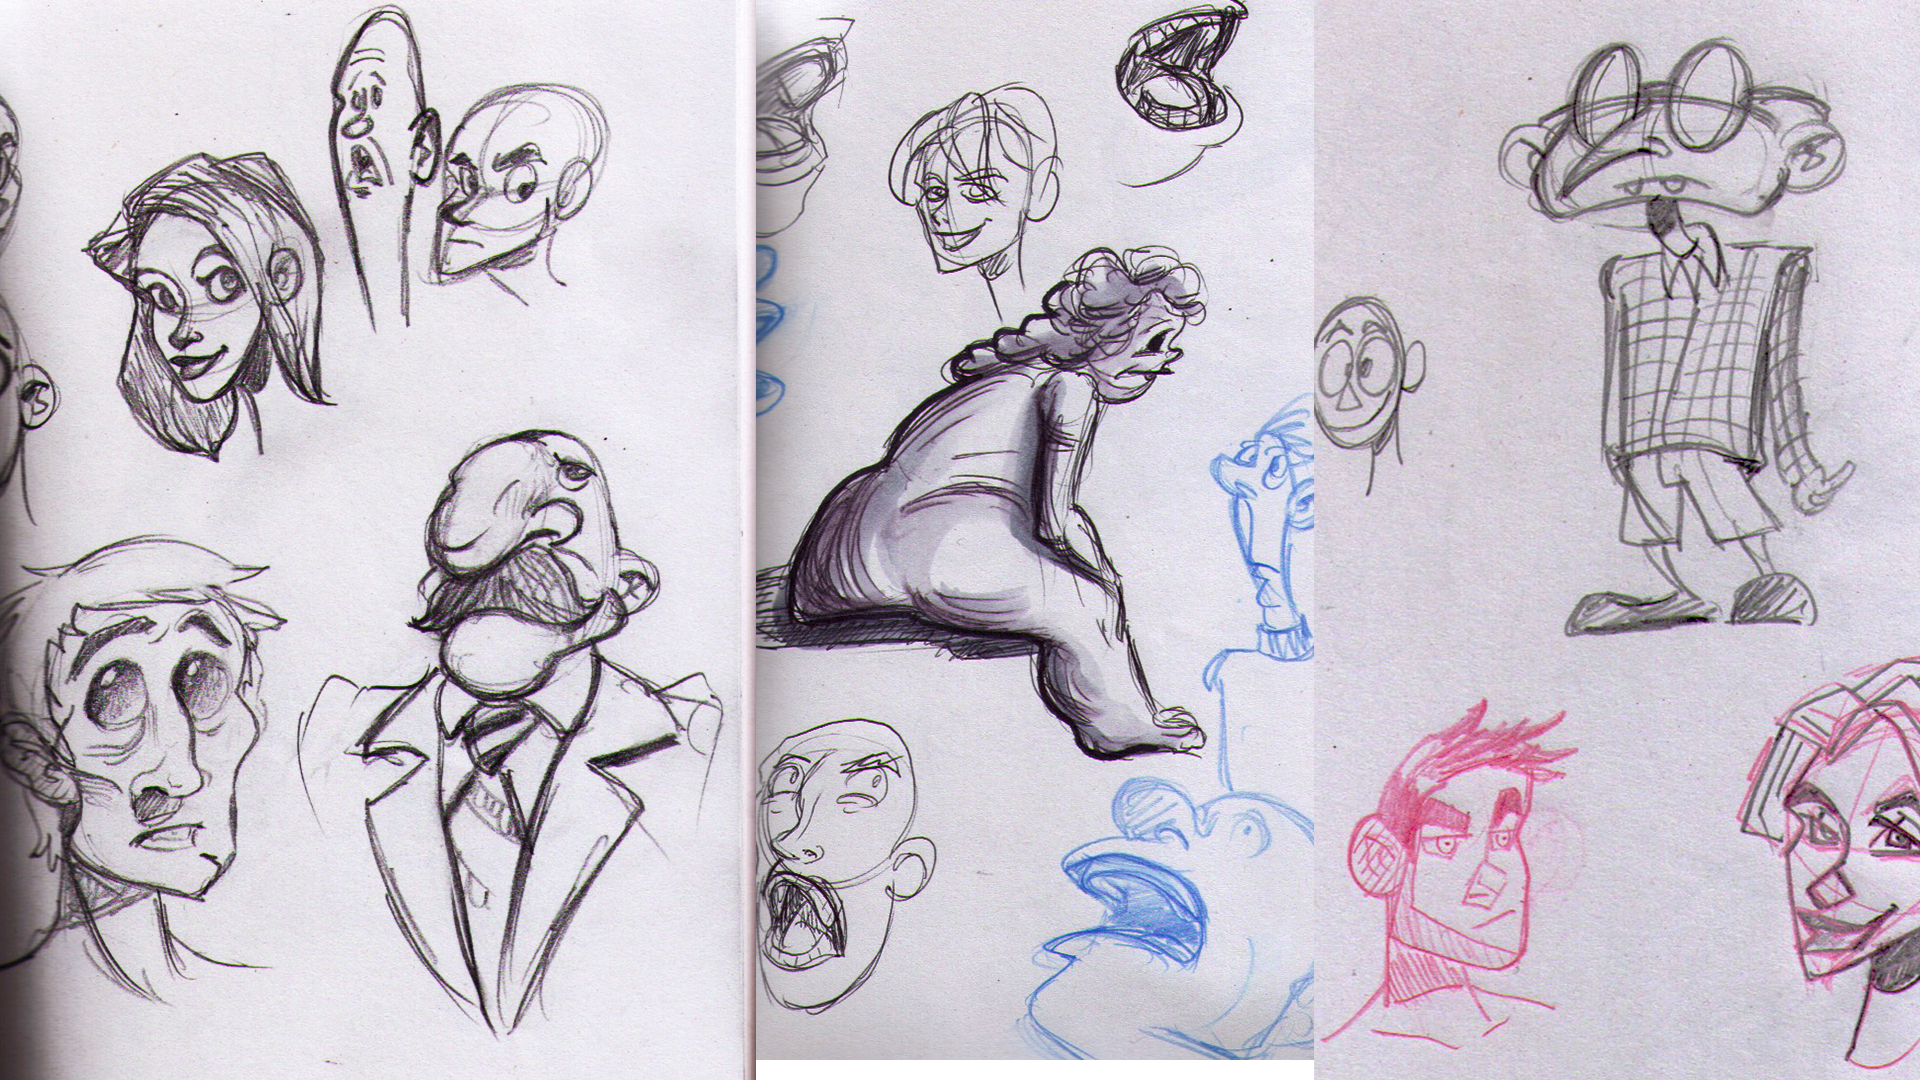 joel_mayer_sketchbook_6